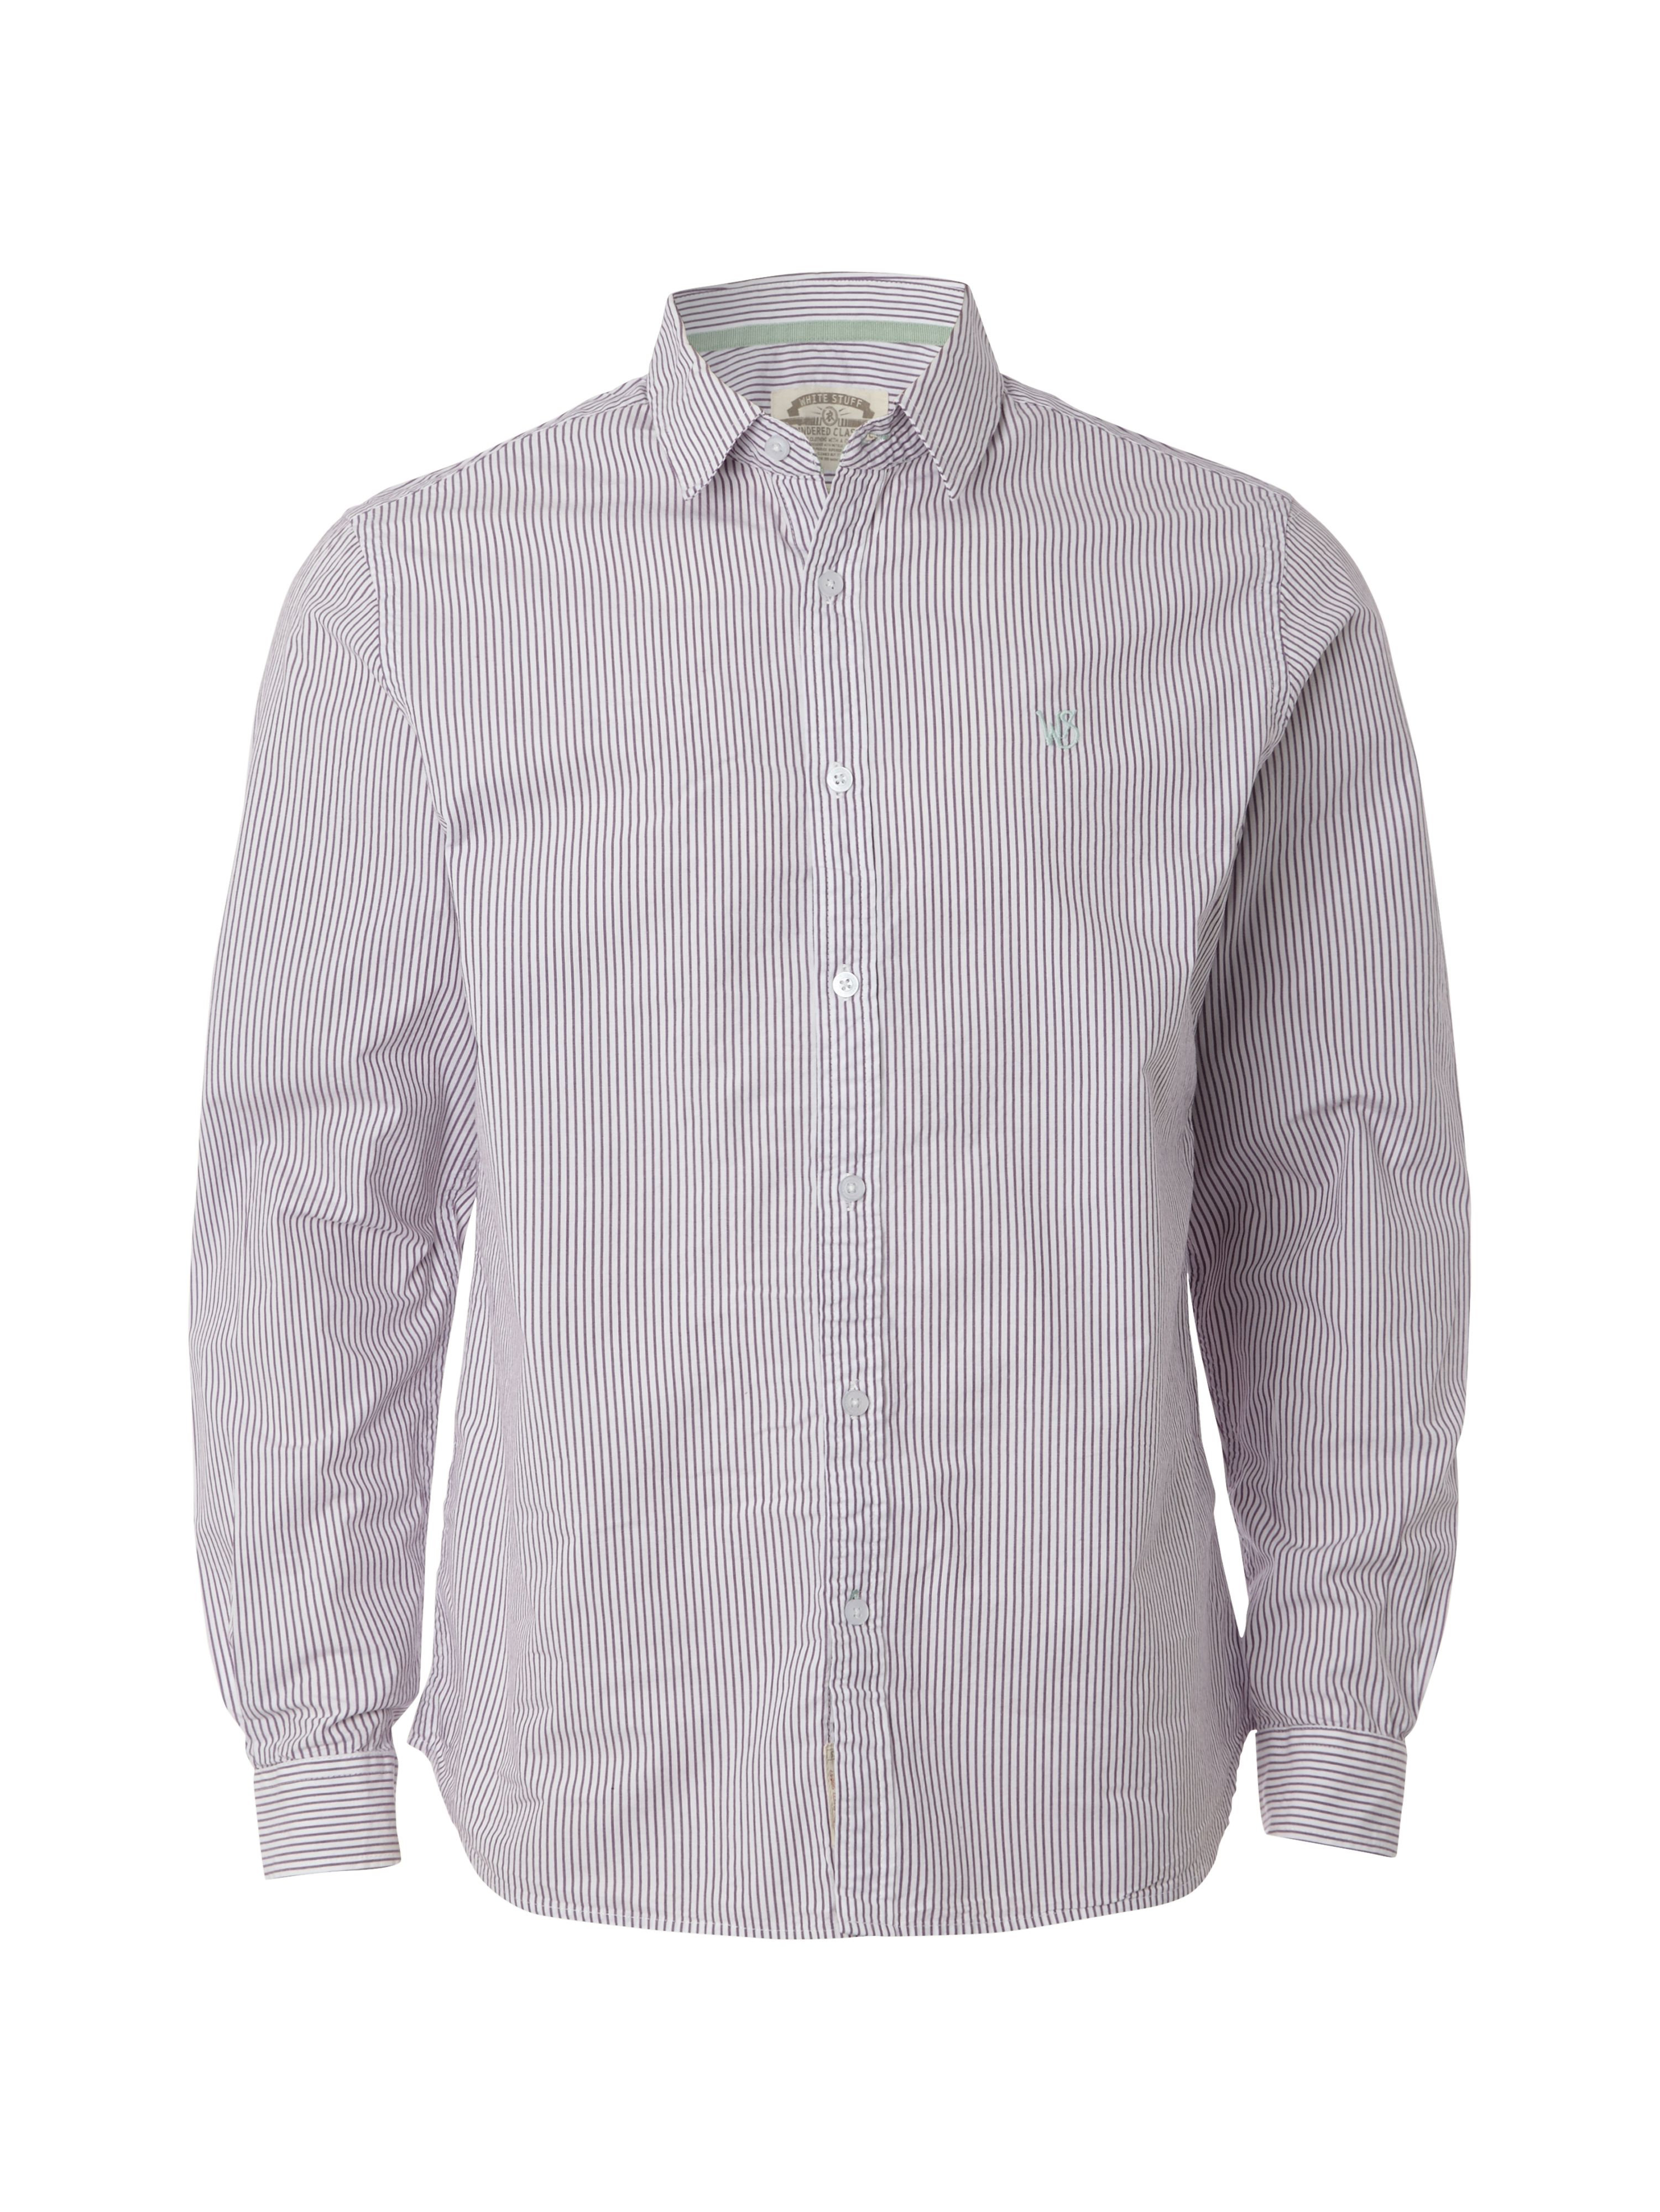 Heartland stripe shirt